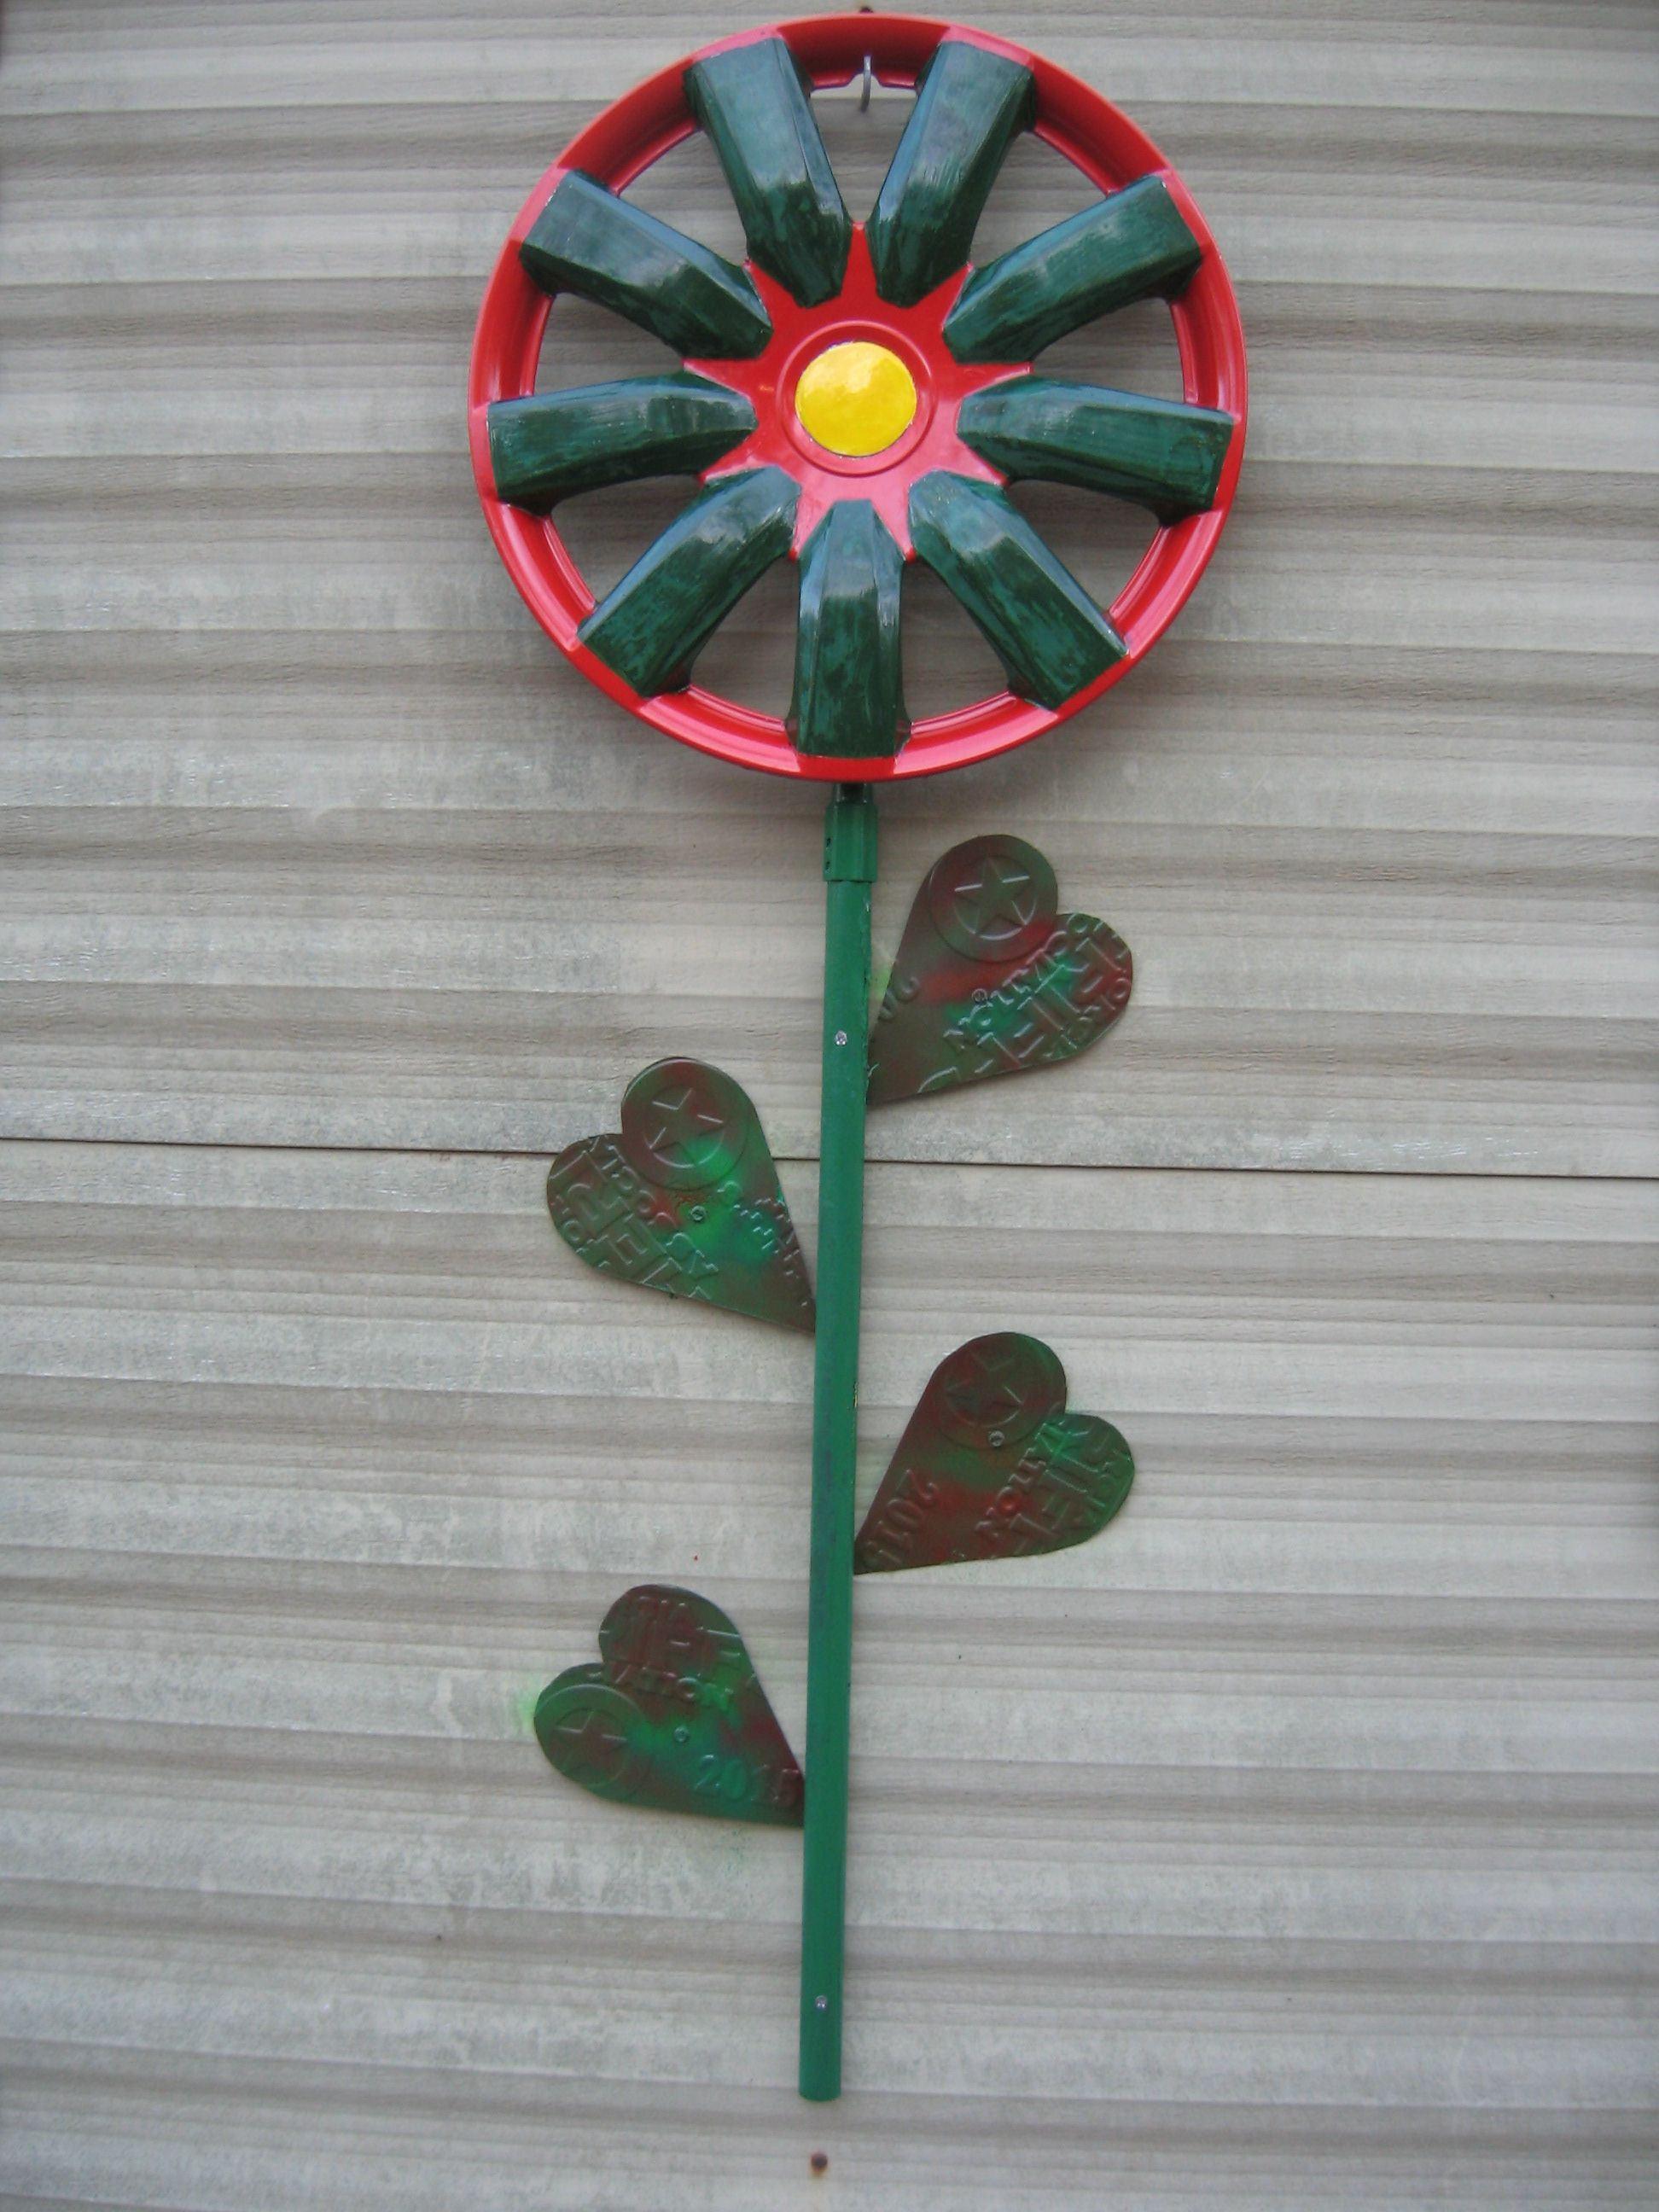 Hubcap Flower with heart leaves